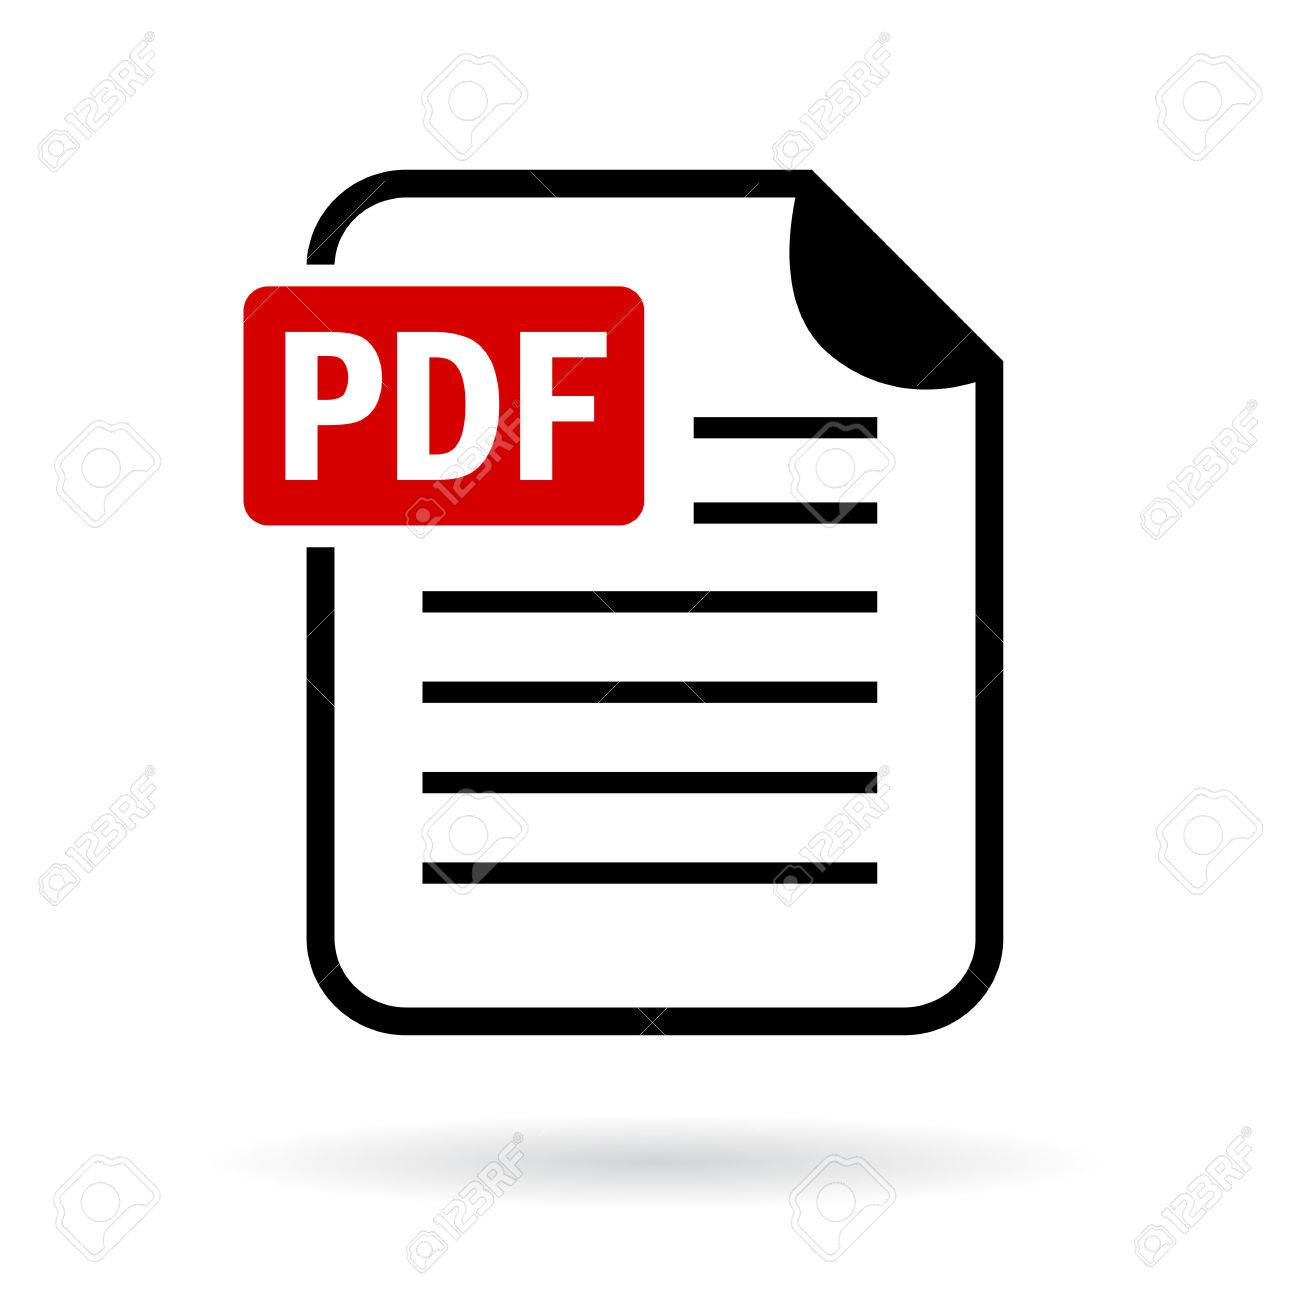 pdf file icon royalty free cliparts vectors and stock illustration